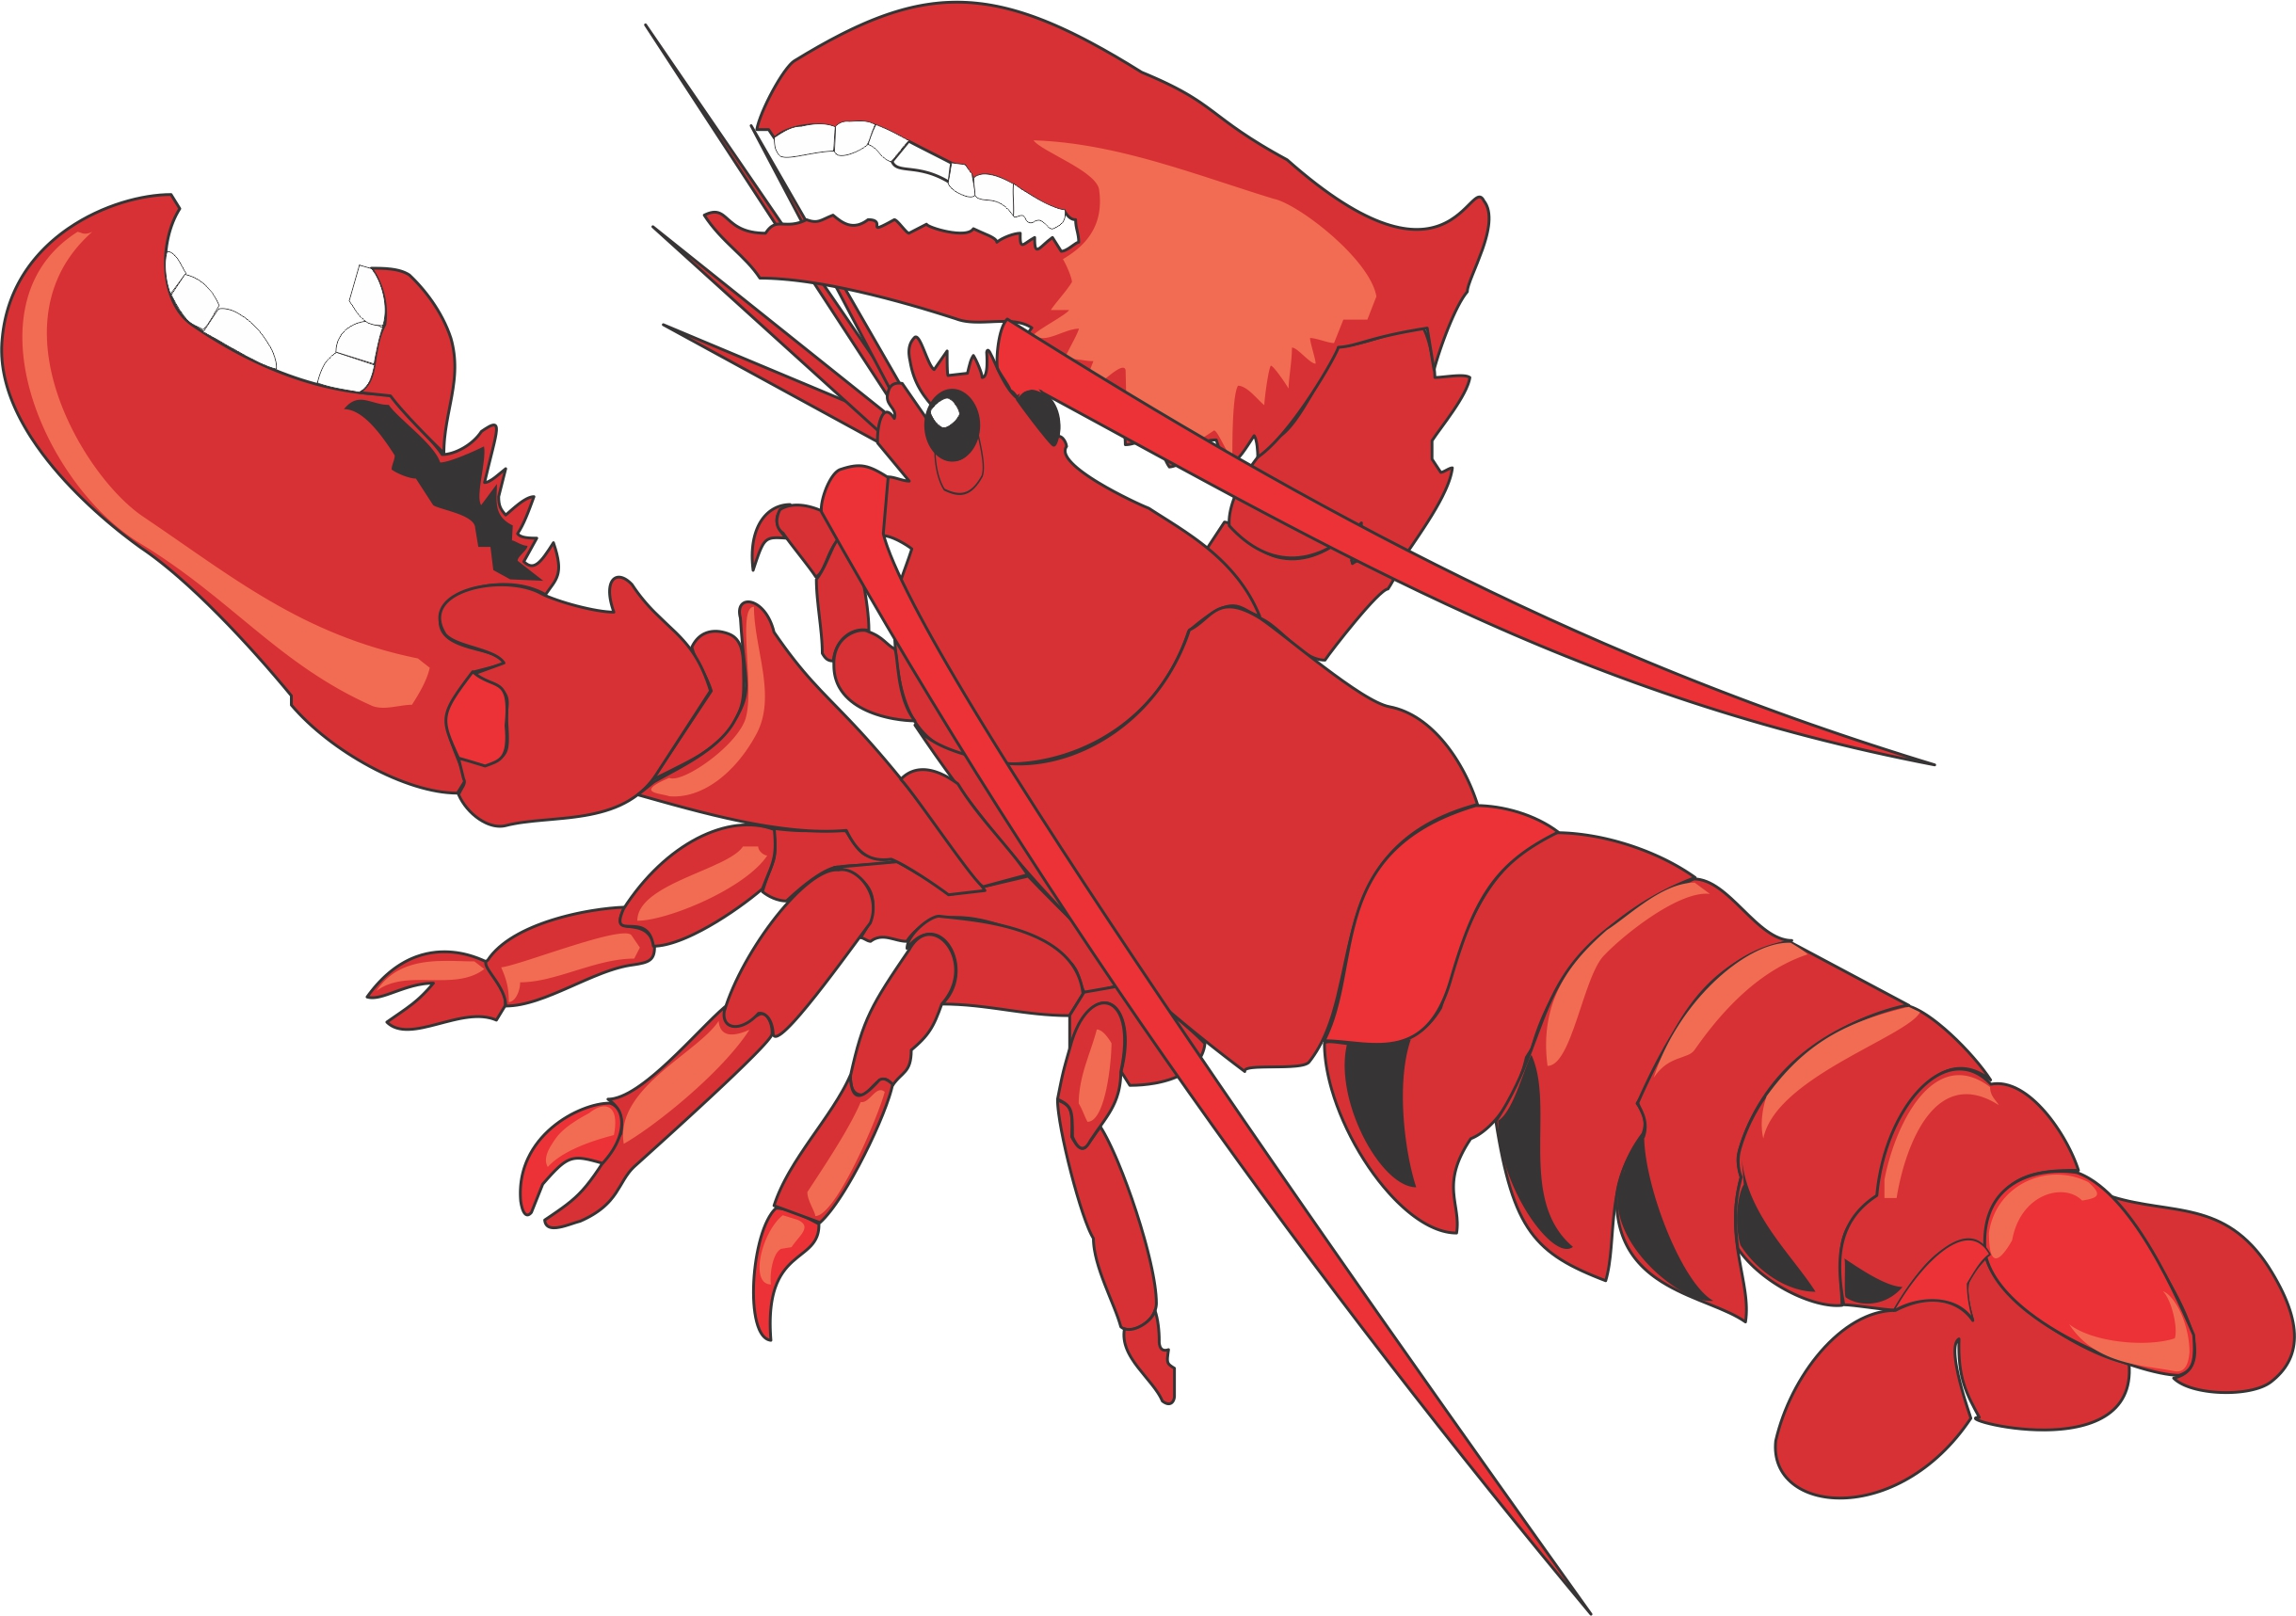 Lobster Clipart Images | Clipart Panda - Free Clipart Images